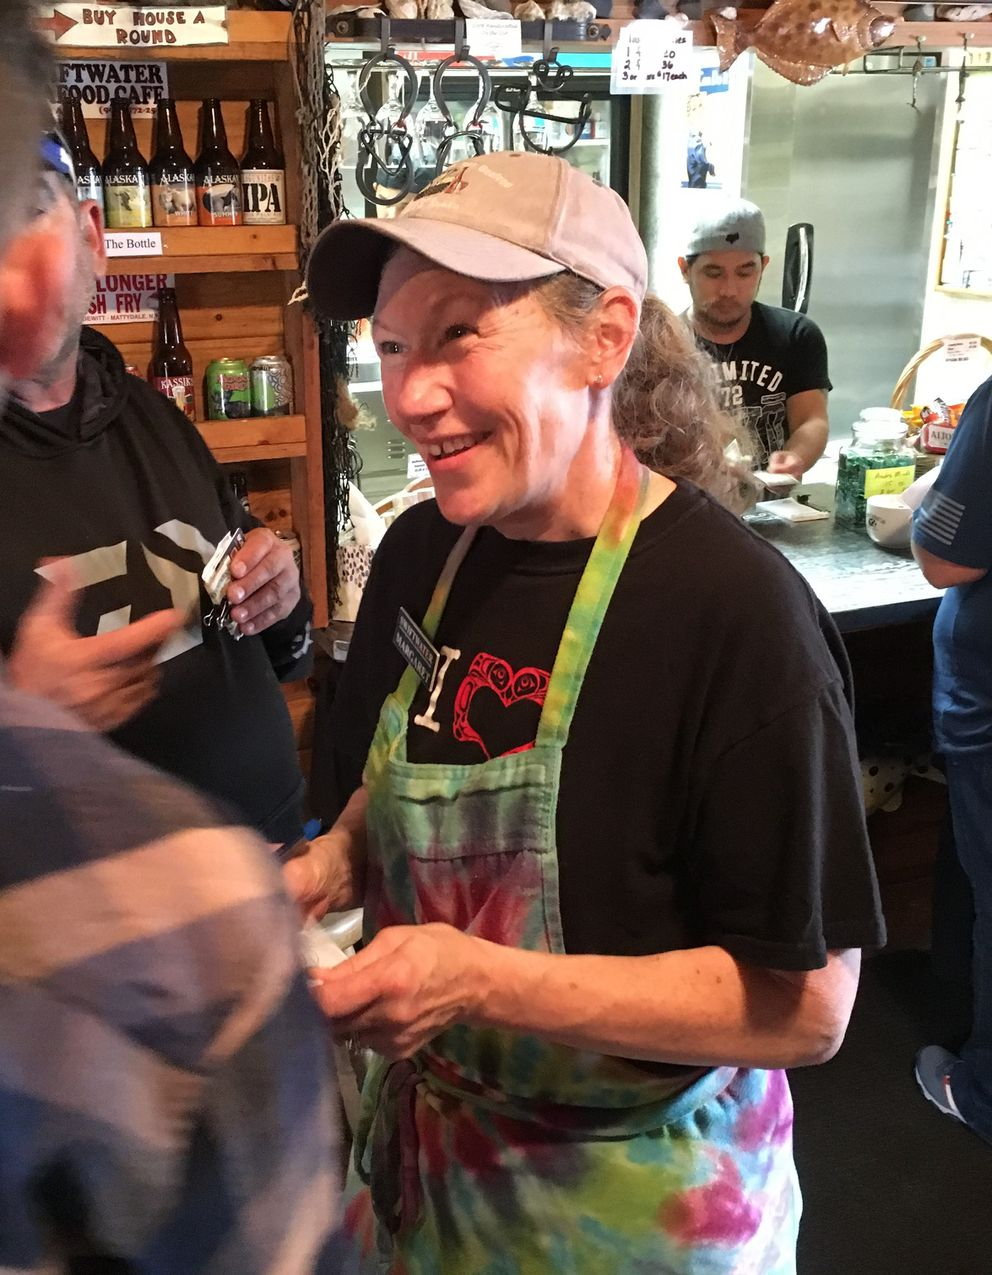 Margaret Varlamos takes orders amid a heavy rush of customers at Varley's Swiftwater Cafe on July 22, 2018. (Charles Wohlforth / ADN)